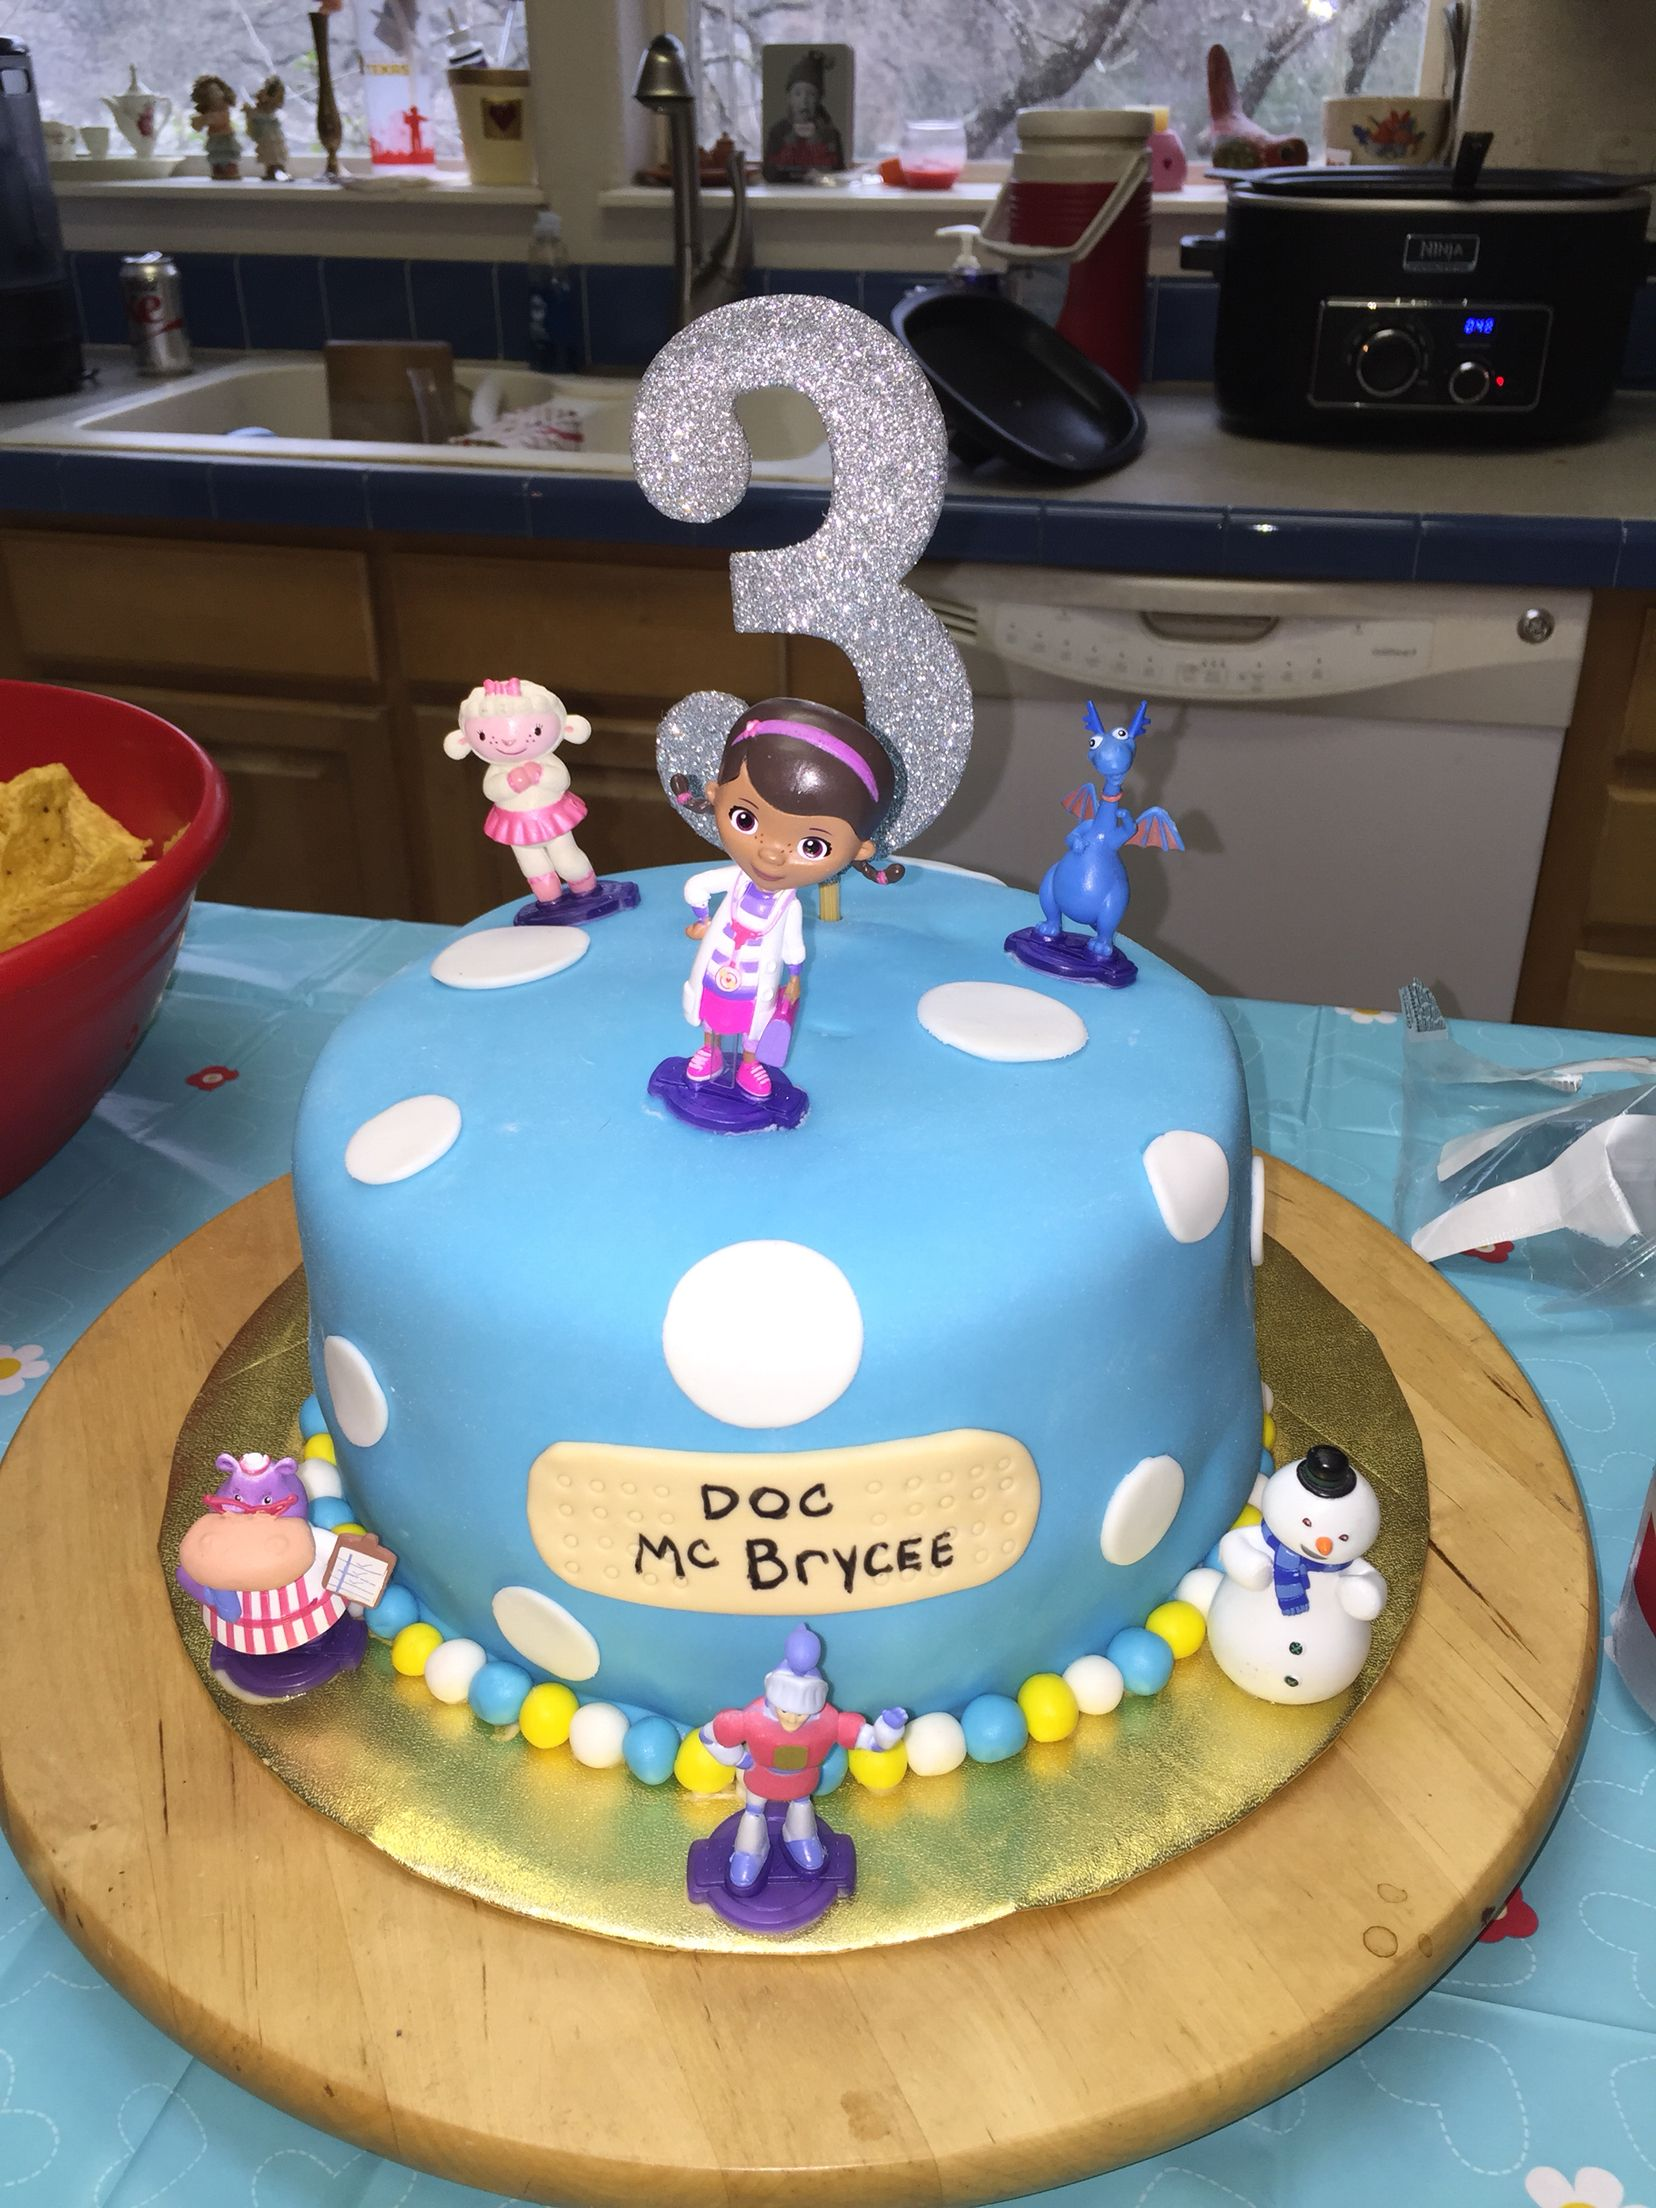 Doc Mcstuffins Cake For Boy Happy Birthday To My Lil Doc Mcbrycee